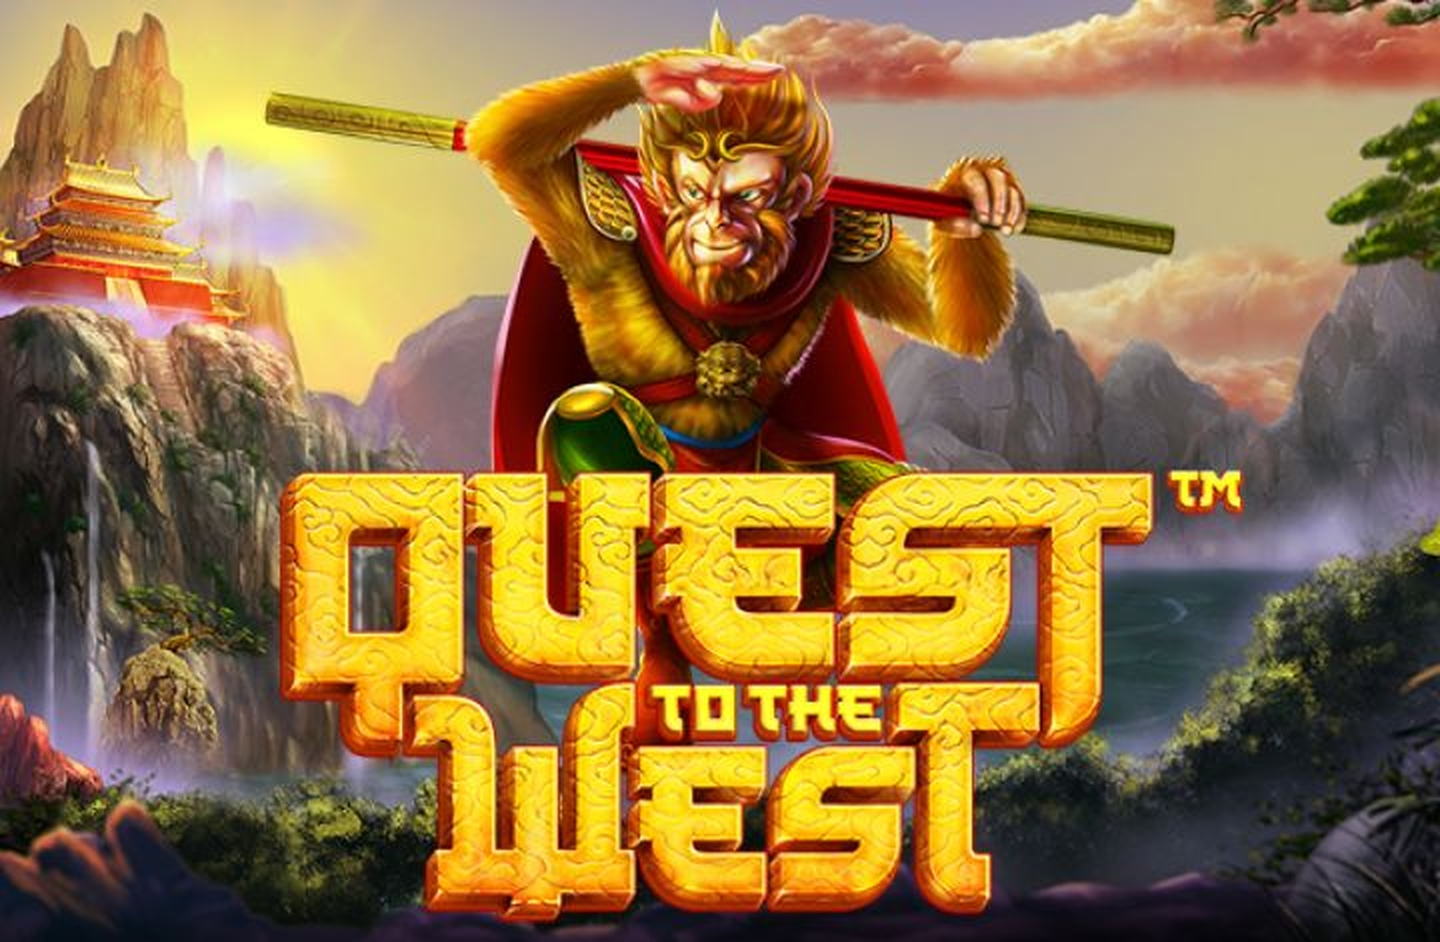 The Quest West Online Slot Demo Game by Rarestone Gaming